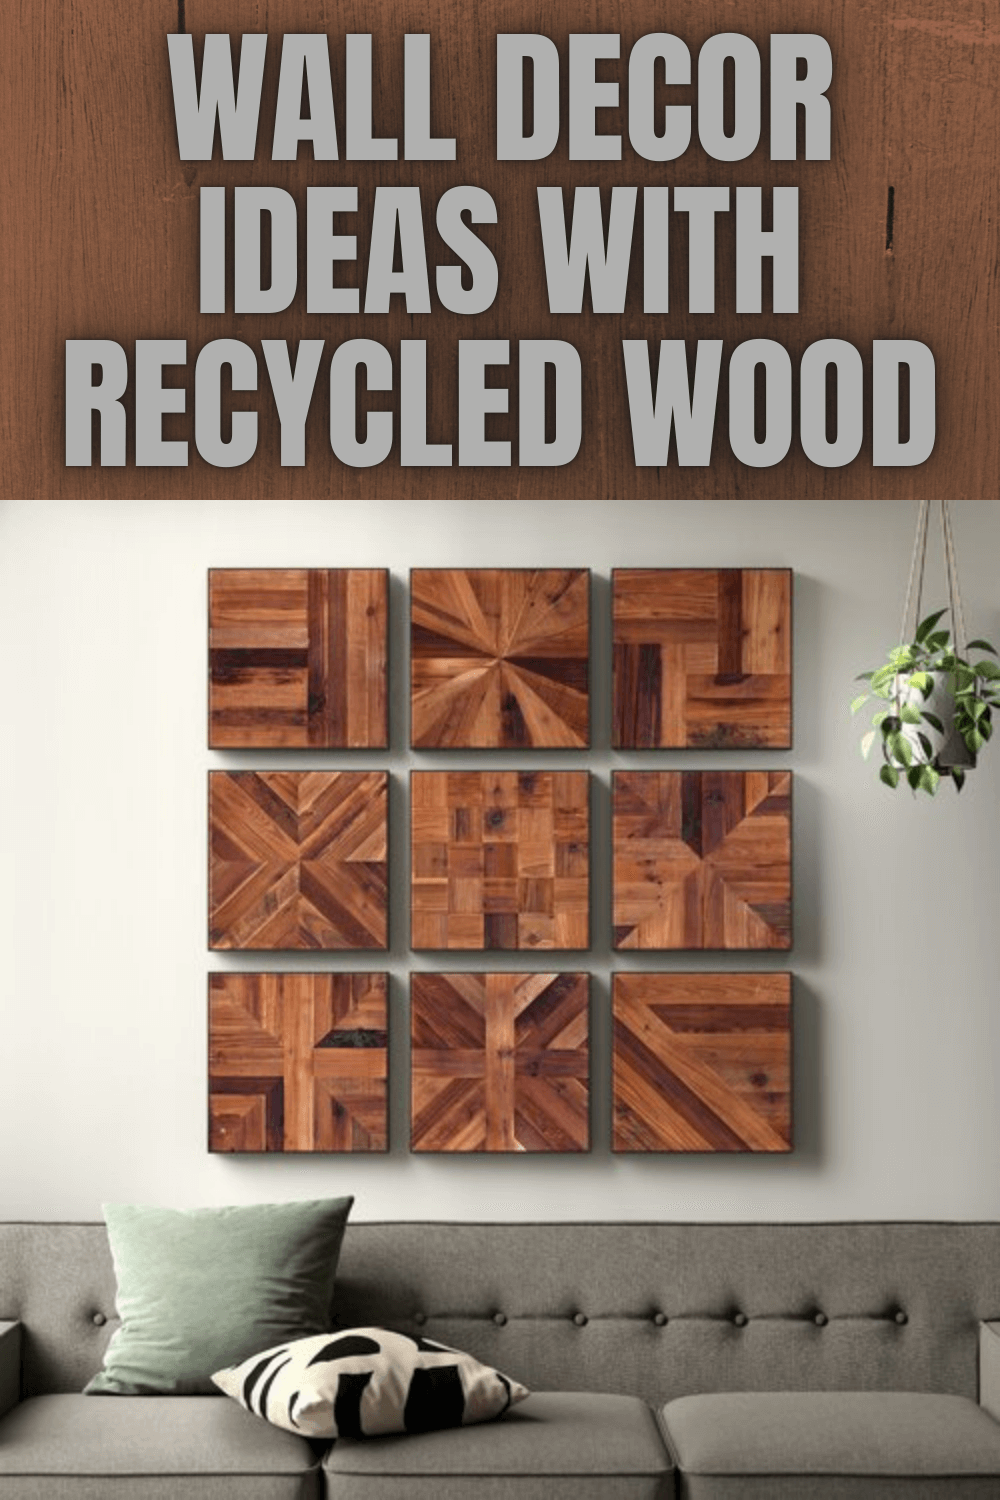 WALL DECOR IDEAS WITH RECYCLED WOOD